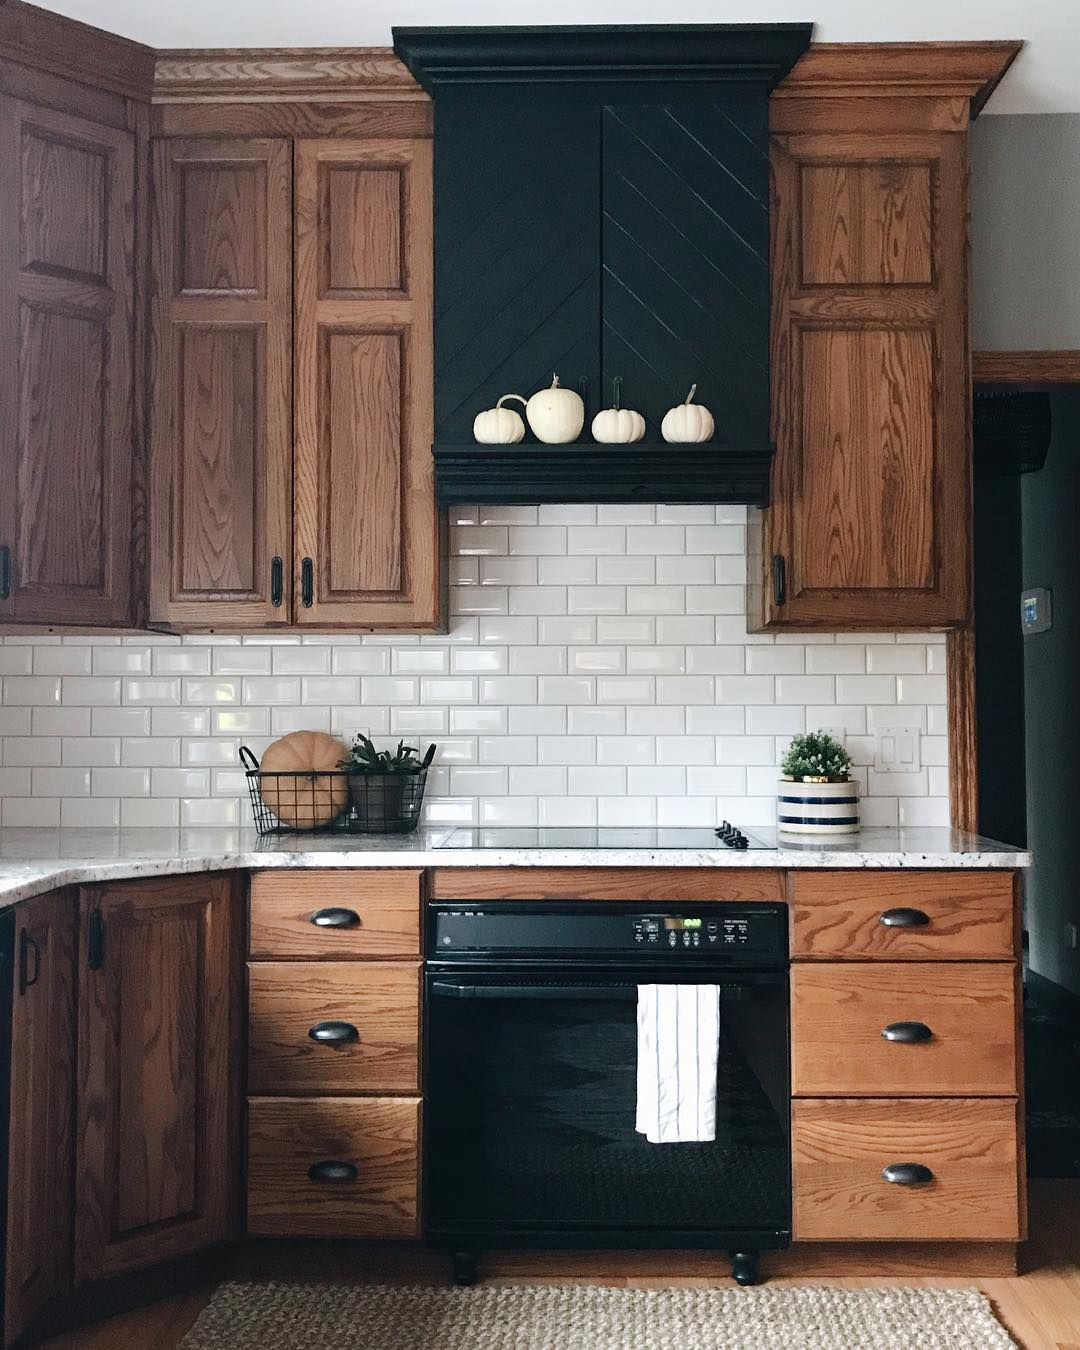 Natural Oak Kitchen Cabinets: Pin By Melanie Westphal On Kitchen Makeover In 2019